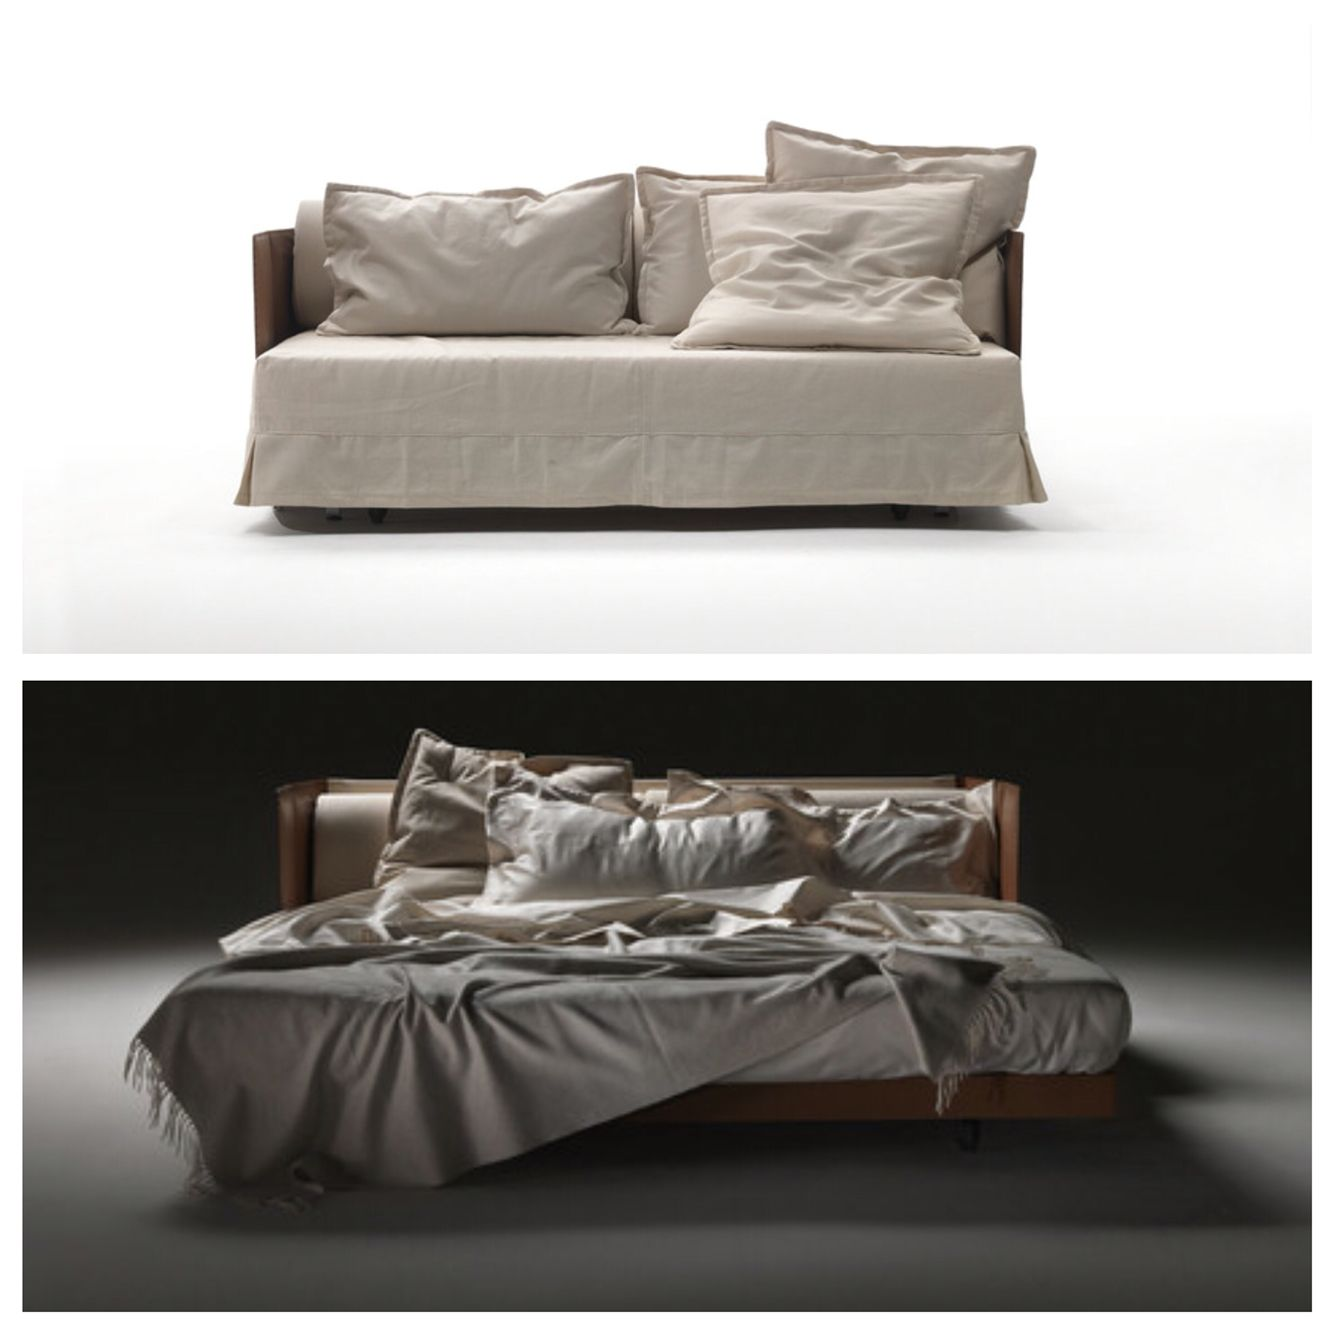 Outstanding Flexform Made In Italy Eden Sofa Bed Project By Antonio Pdpeps Interior Chair Design Pdpepsorg